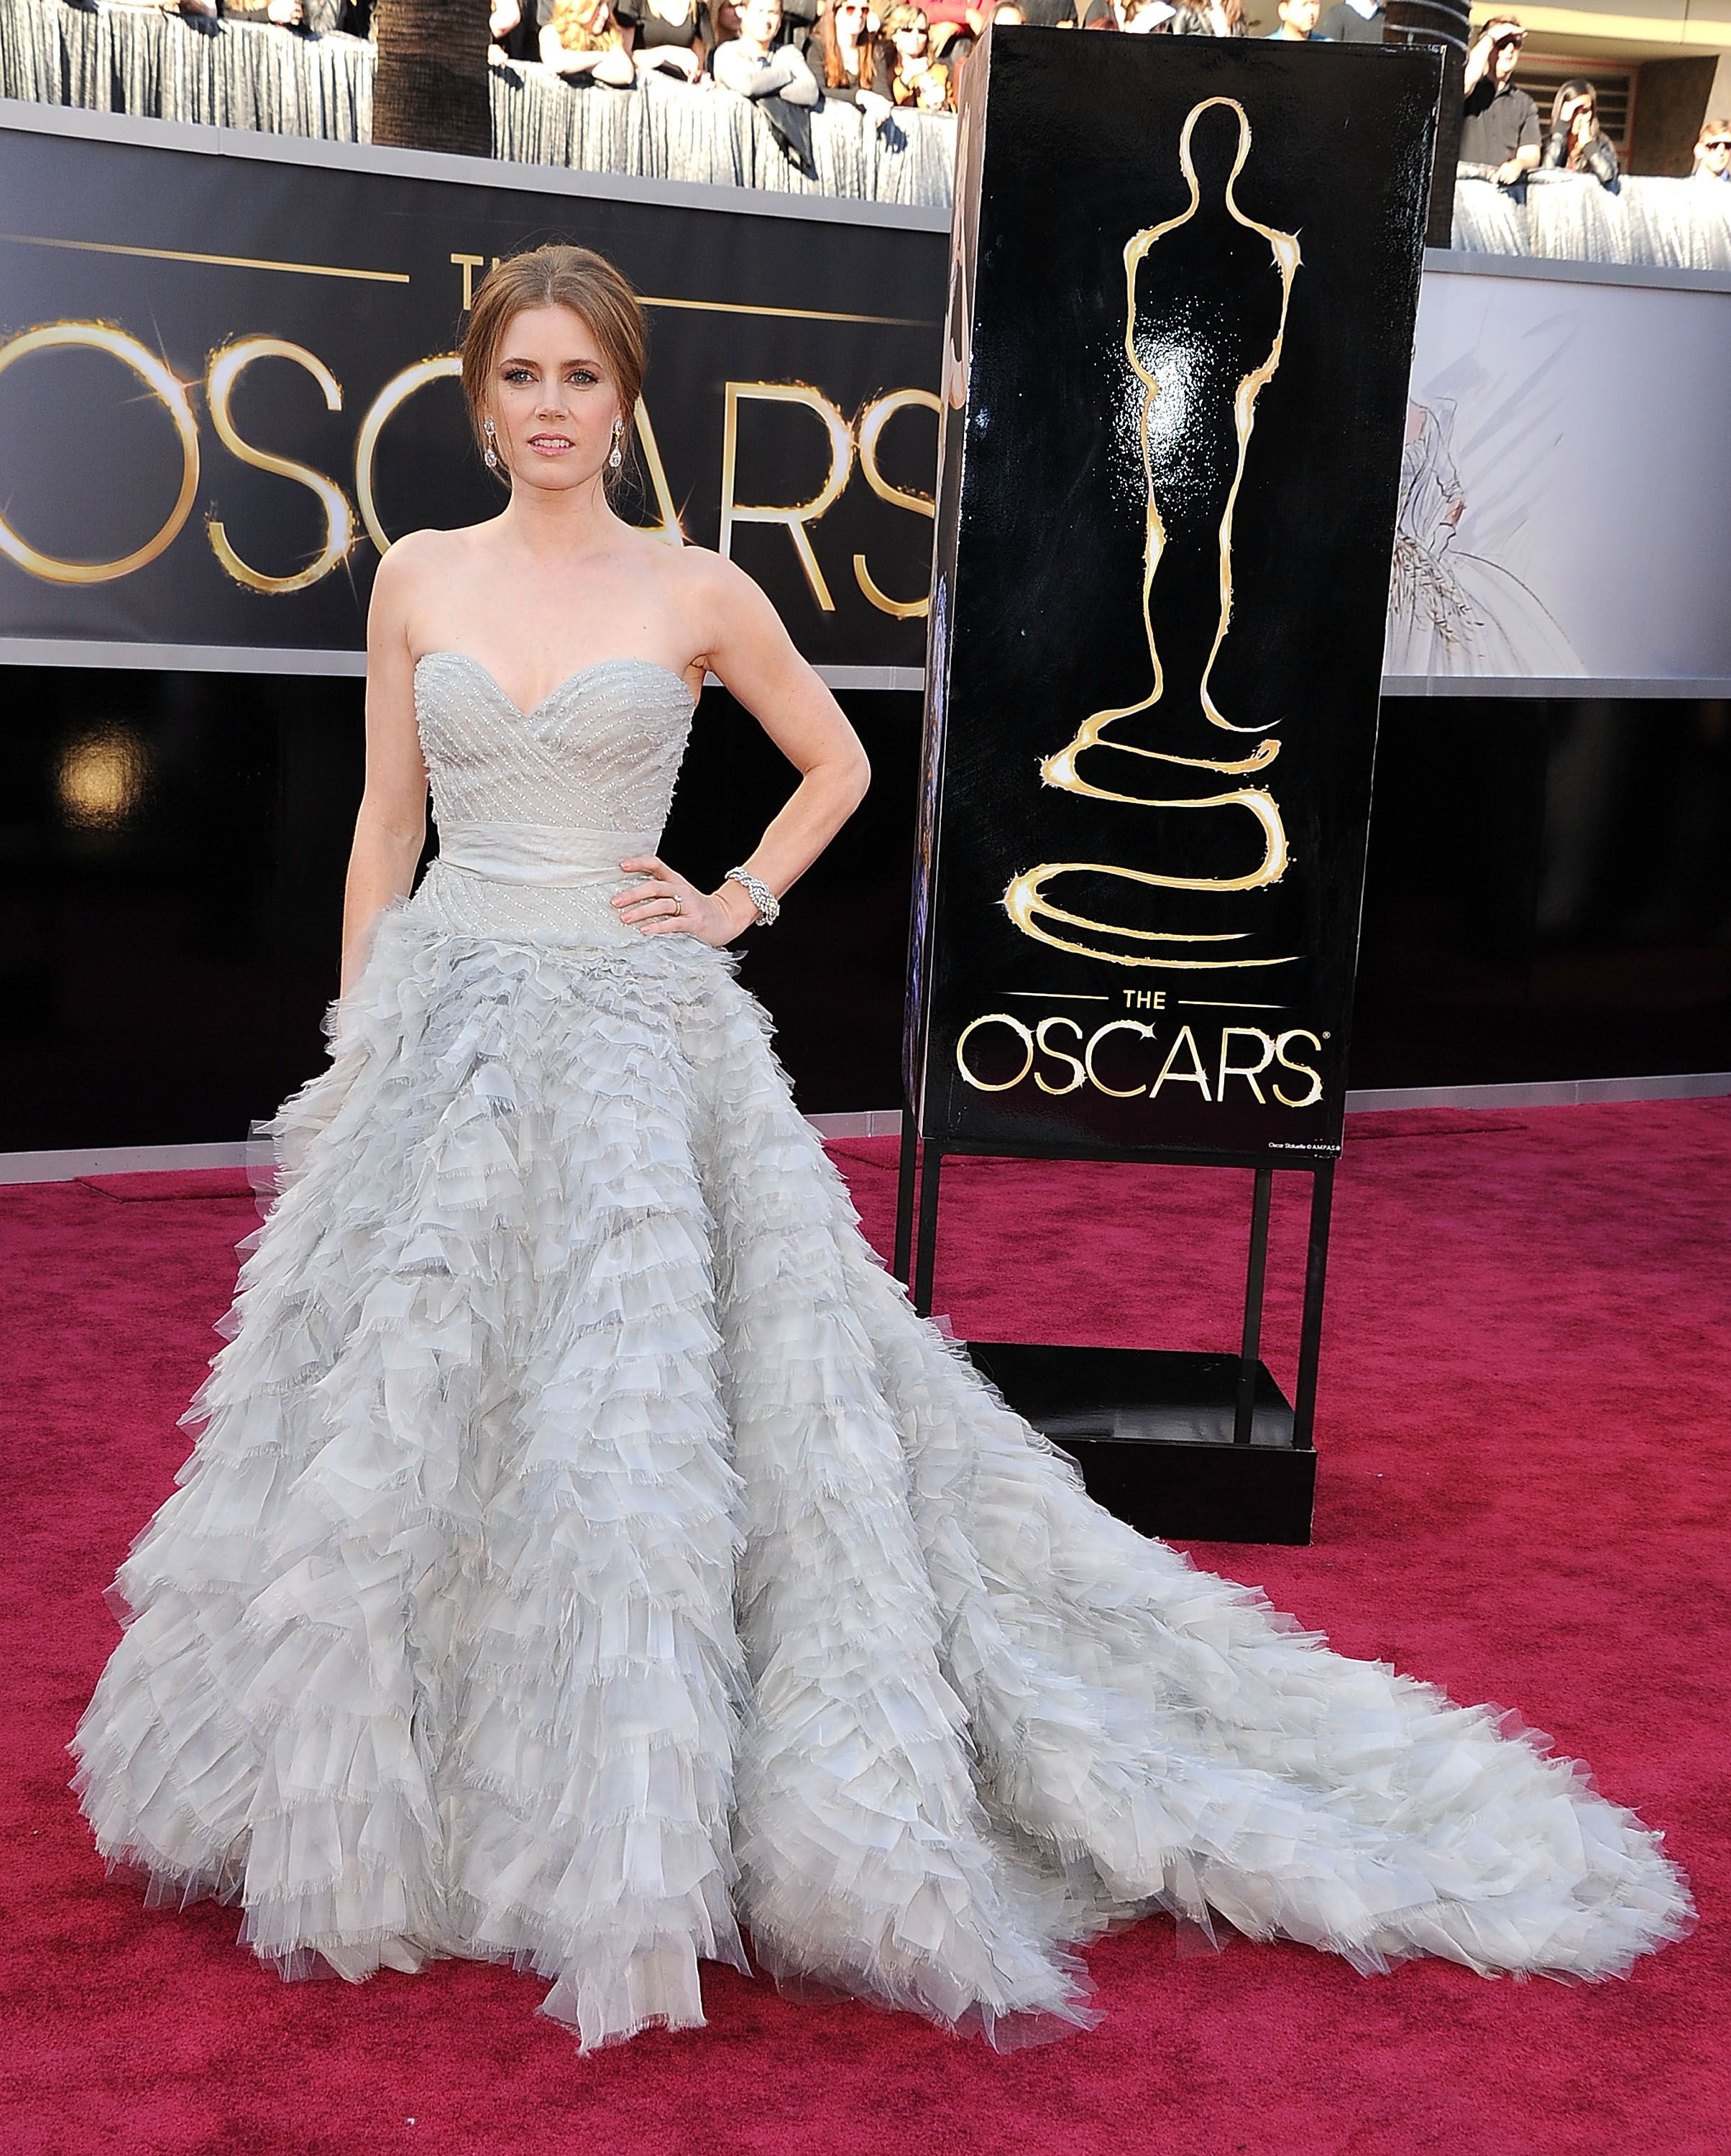 The 25 Best Oscars Dresses Of All Time Stylecaster